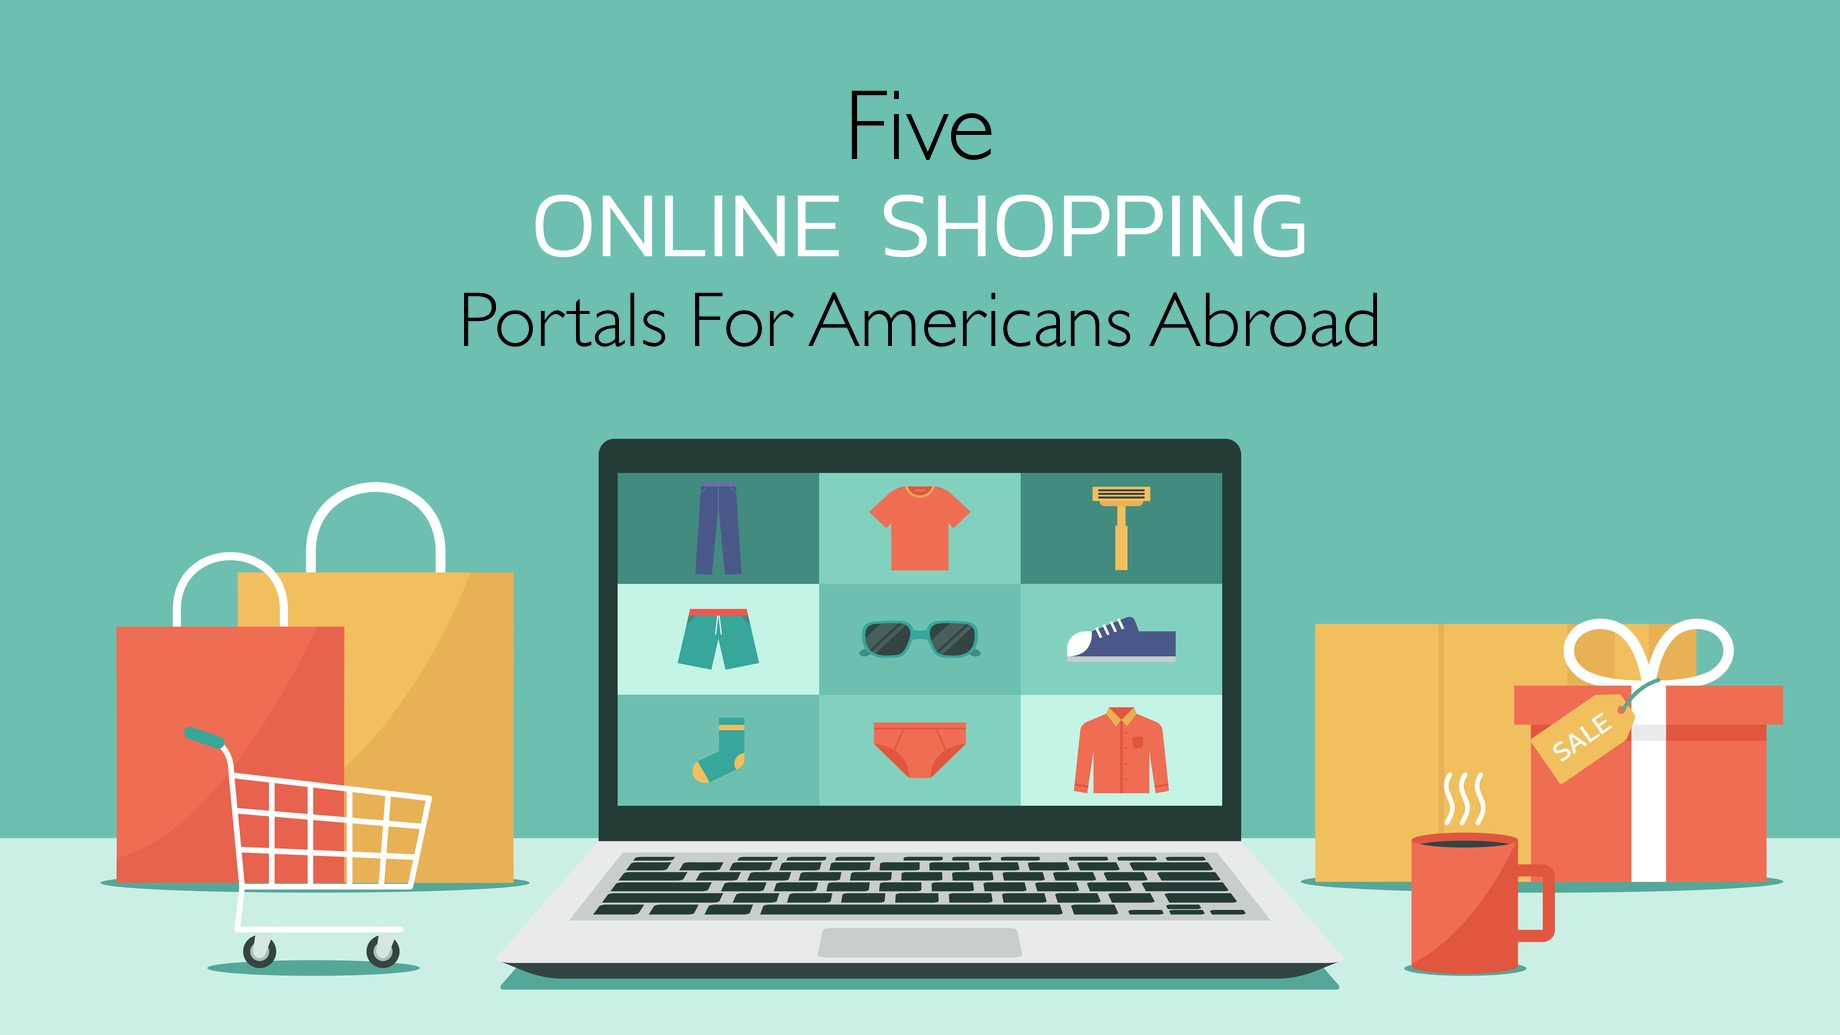 5 Online Shopping Portals For Americans Abroad